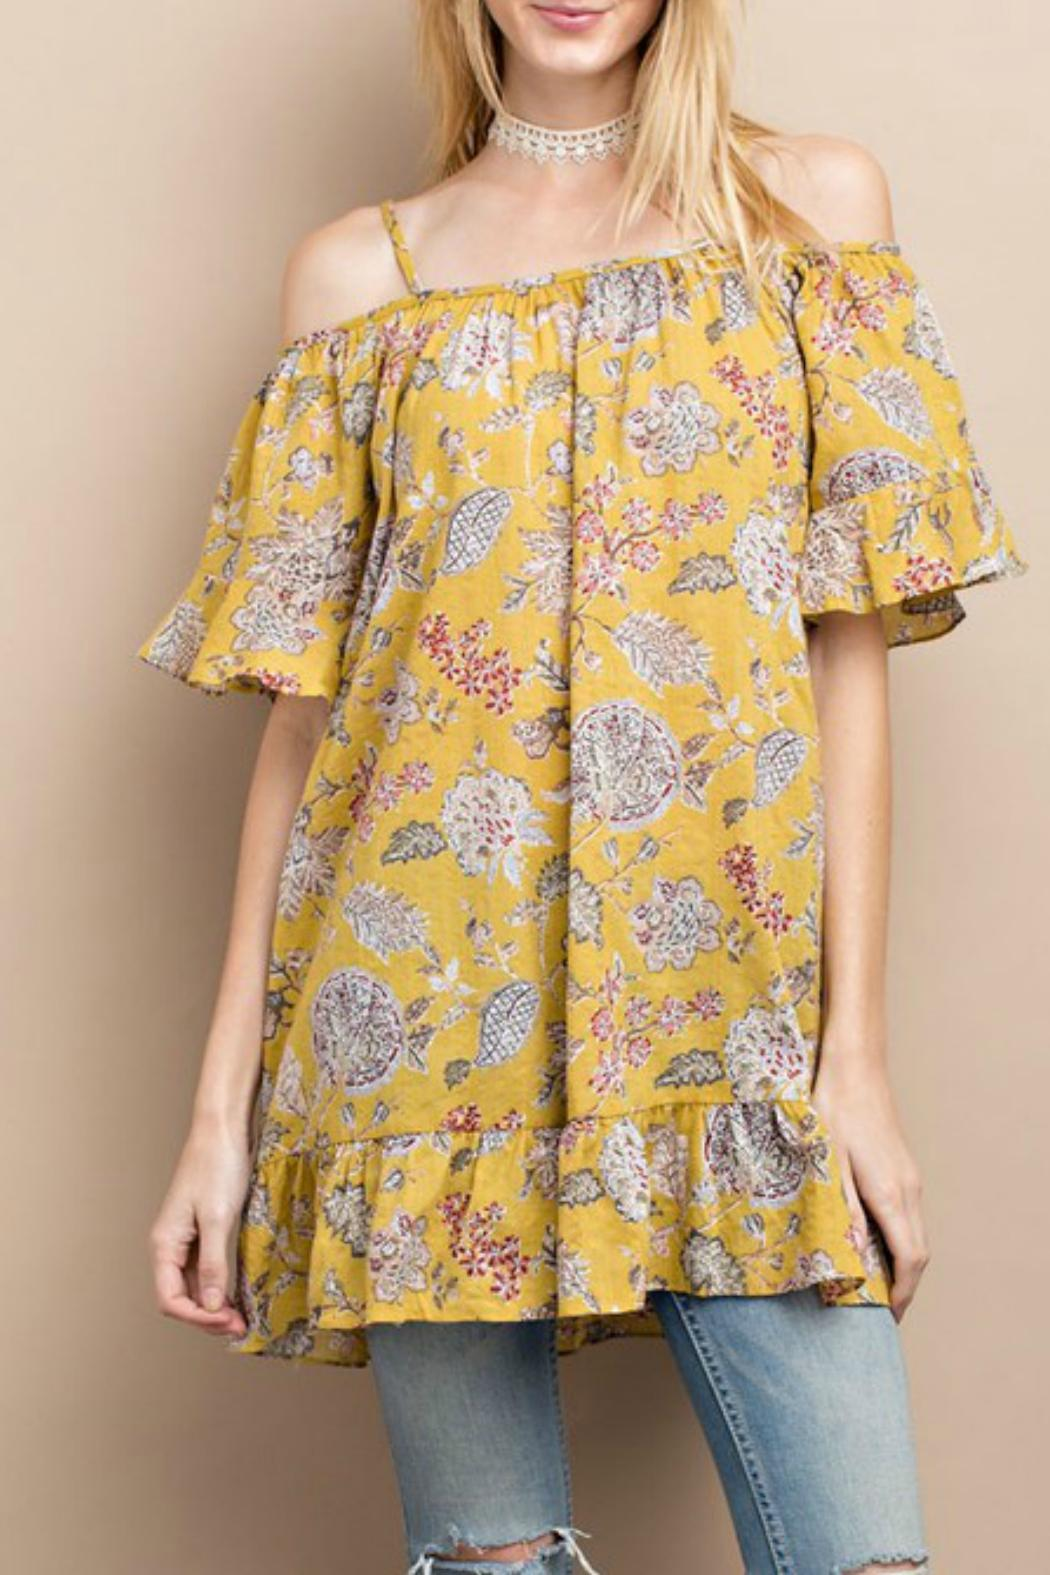 easel Happy Floral Tunic - Main Image